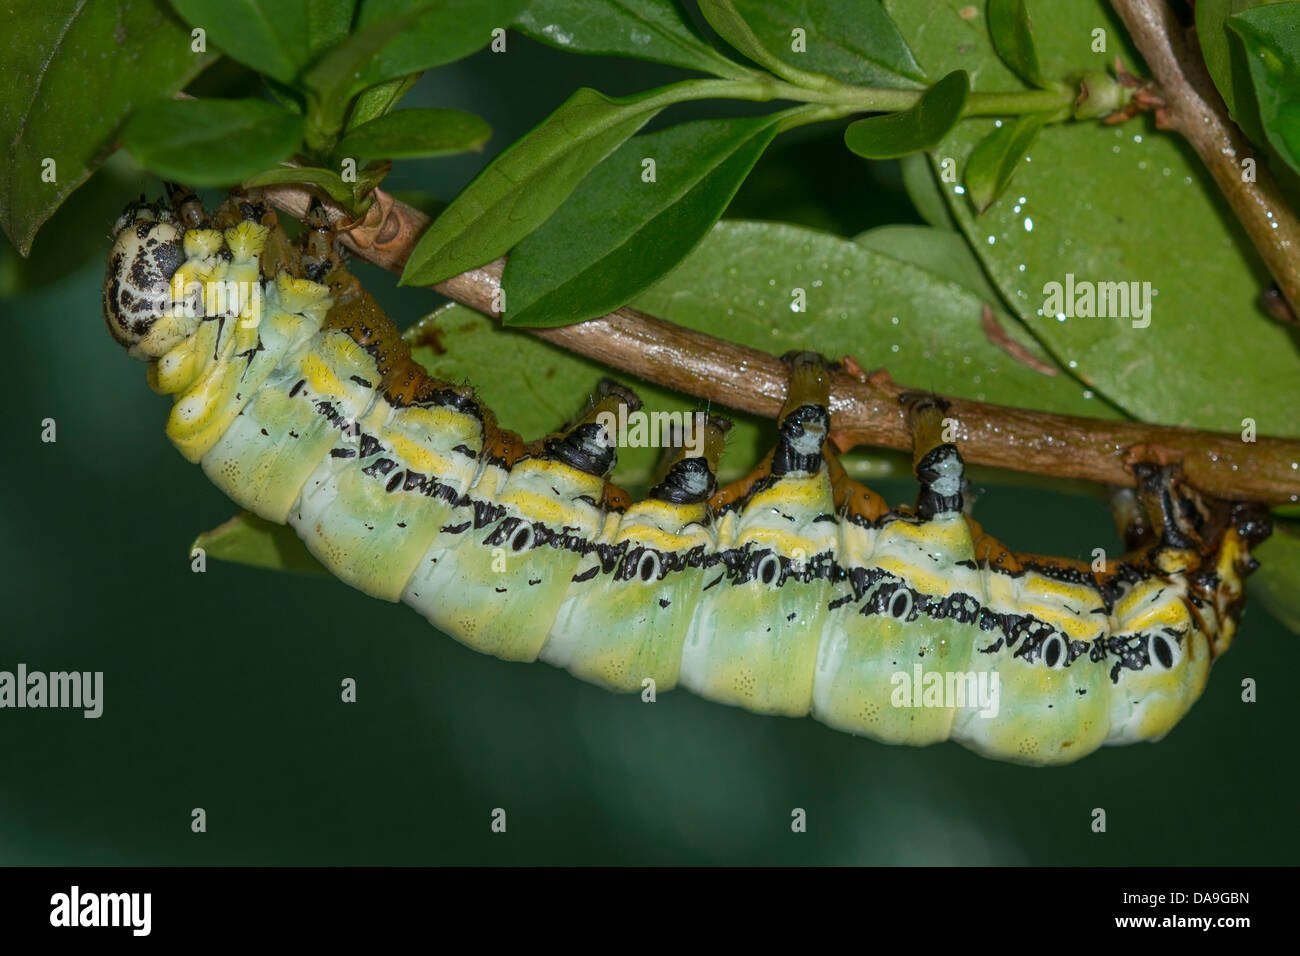 A larva of the Owl Moth - Stock Image